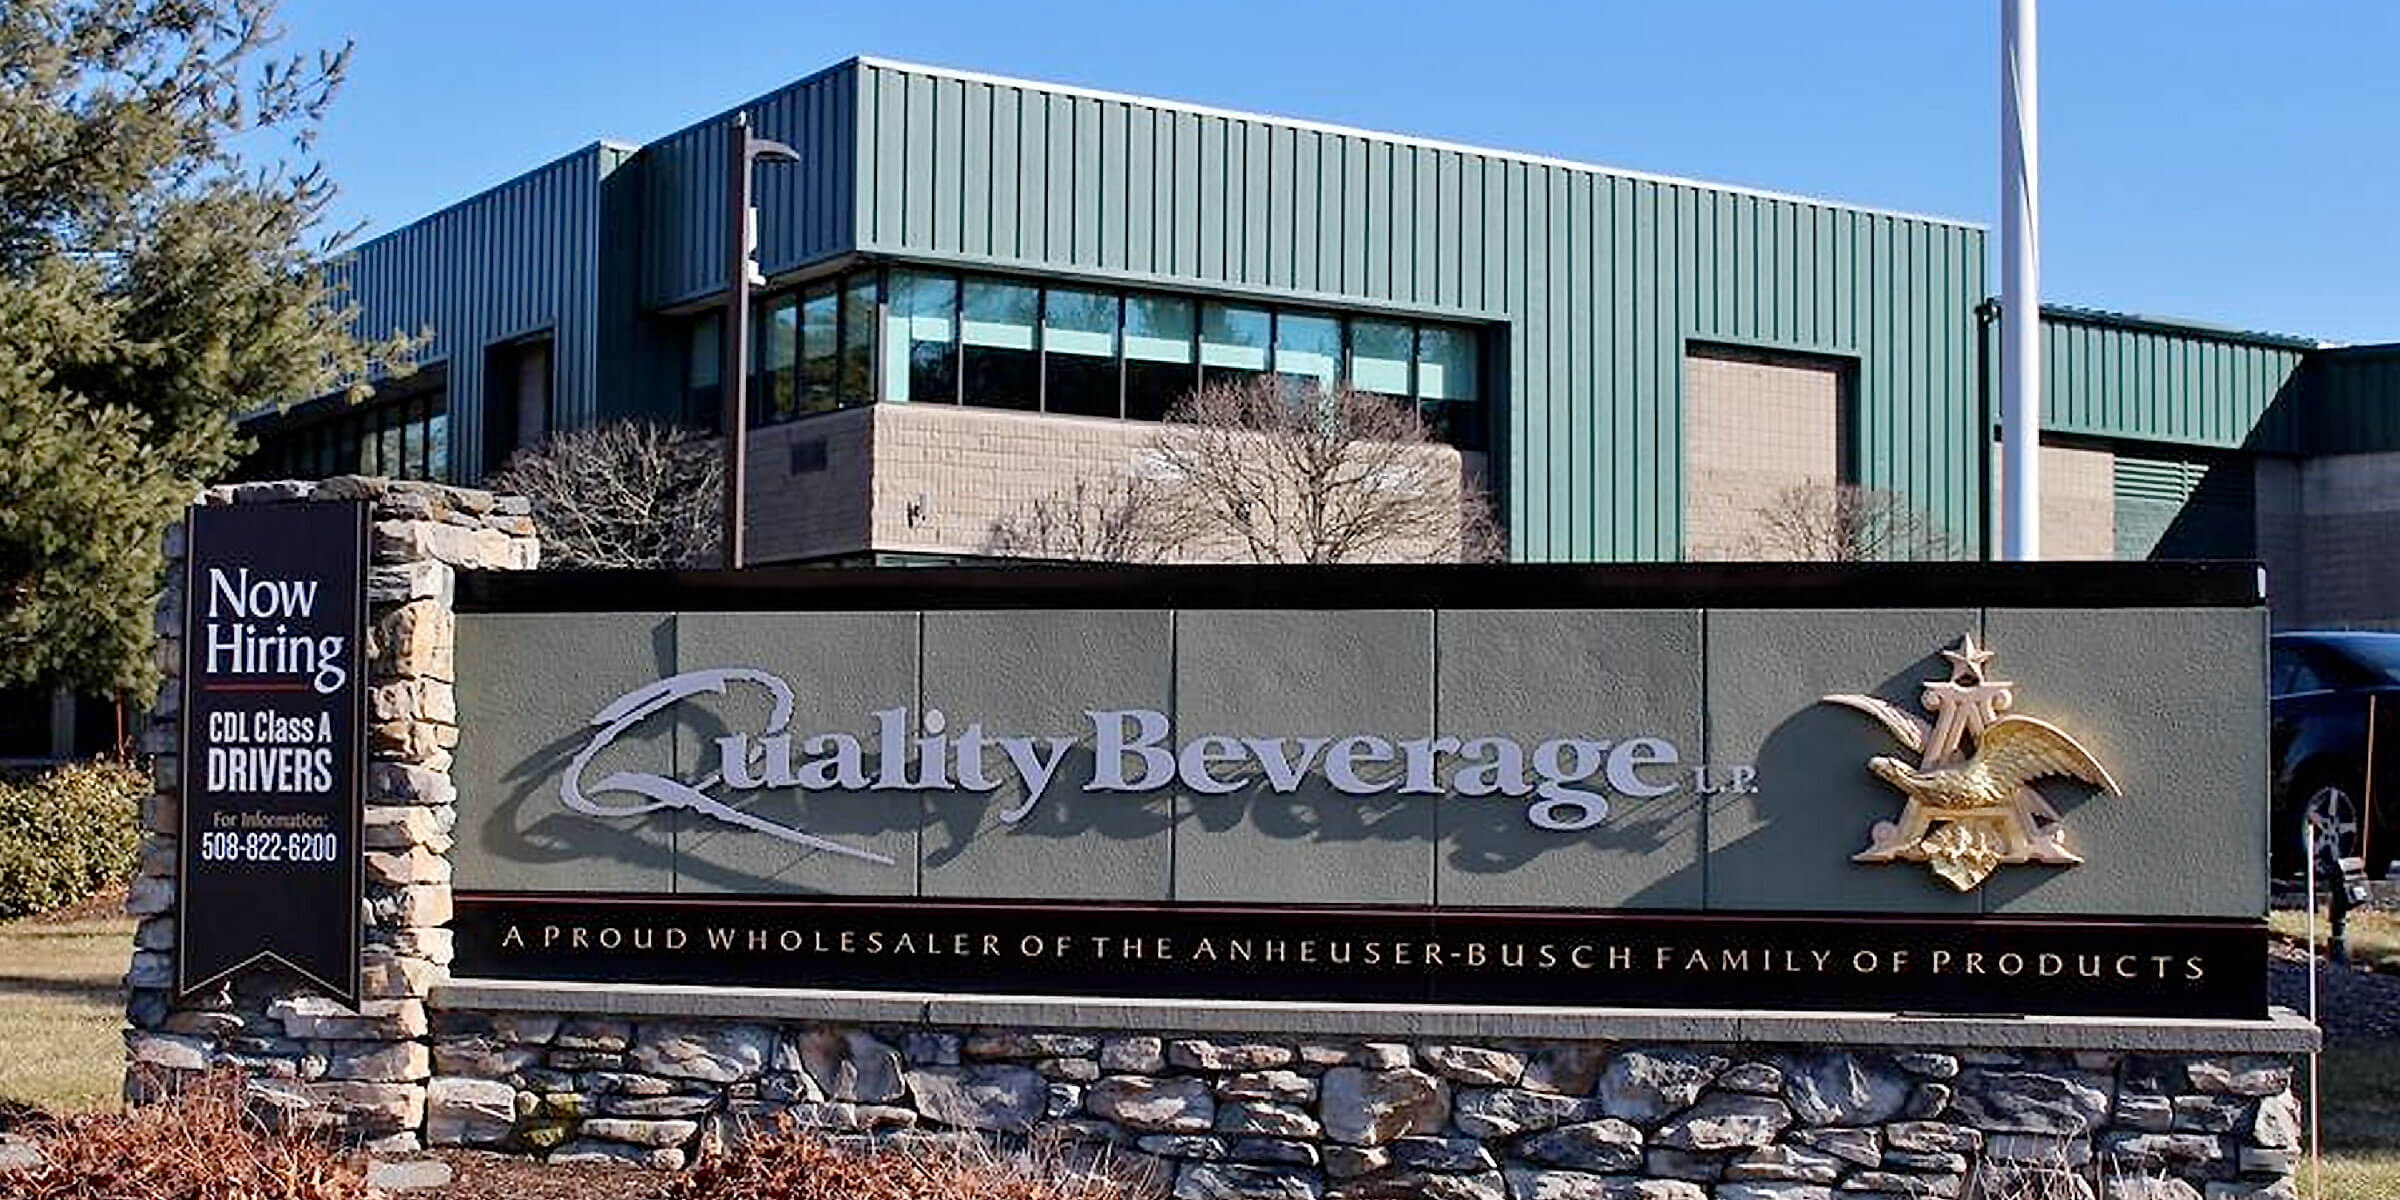 Quality Beverage is Largest Anheuser-Busch Wholesaler in